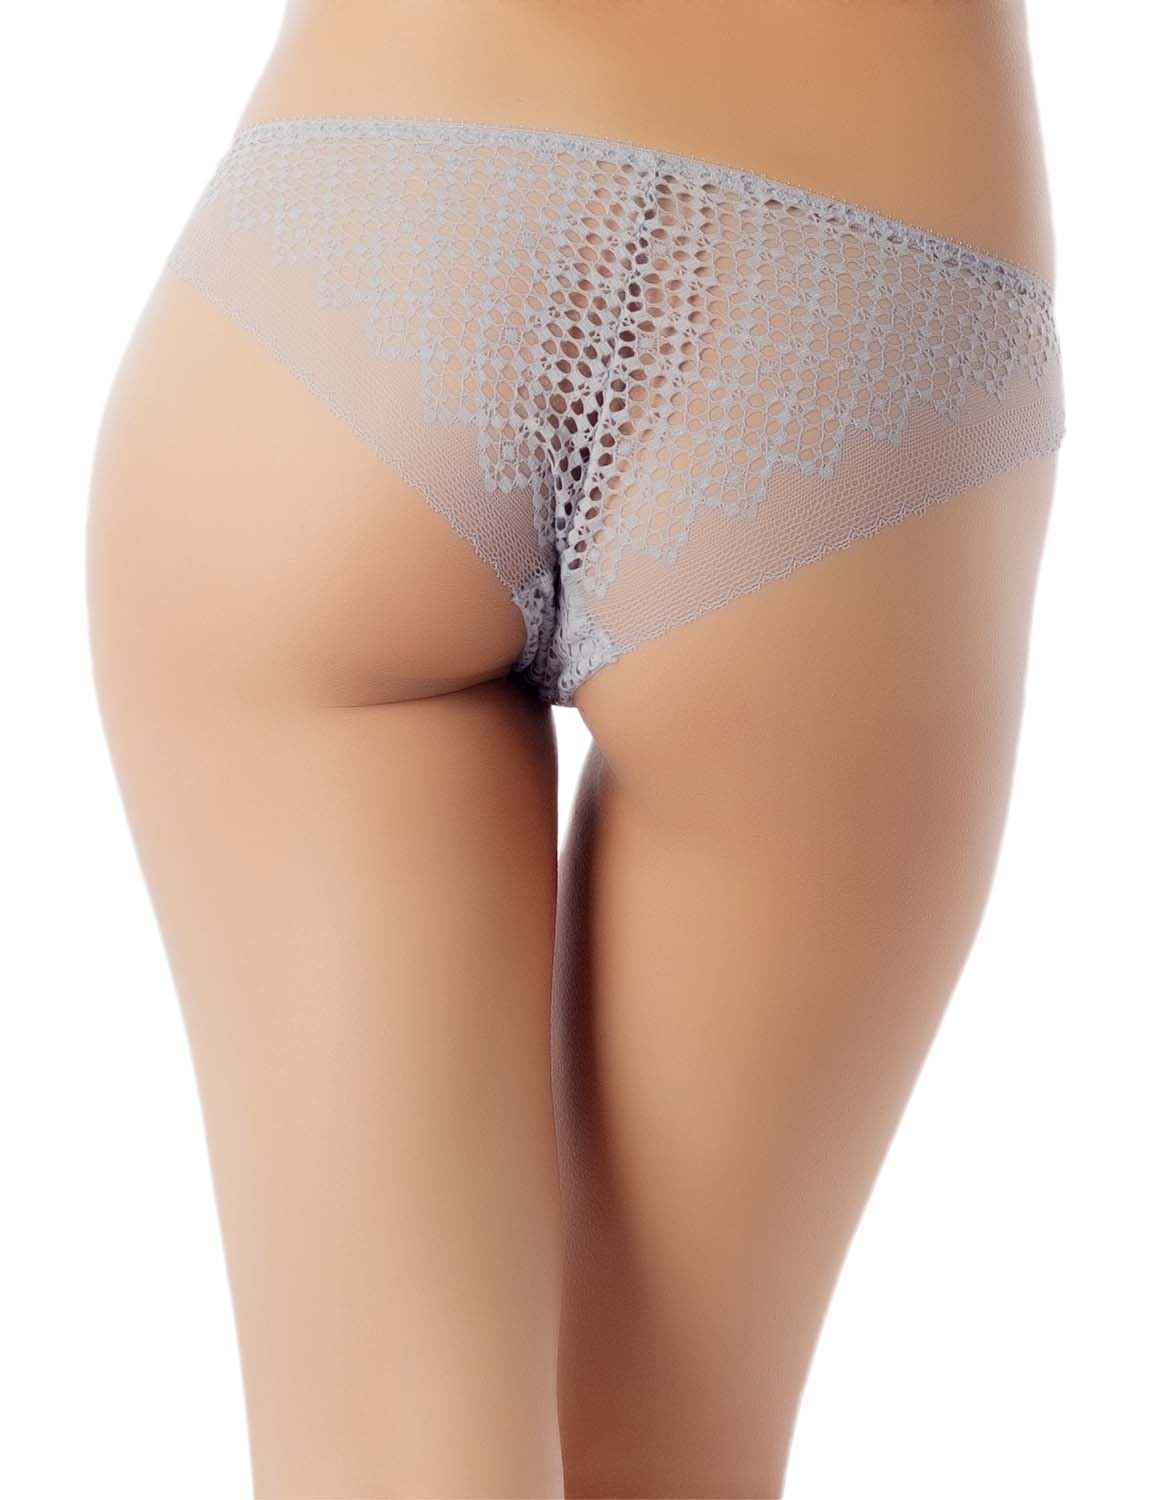 Women's See-Through Sheer Sexy Laces Cotton Comfort Low Rise Brief Panty, Size: L, Light Grey